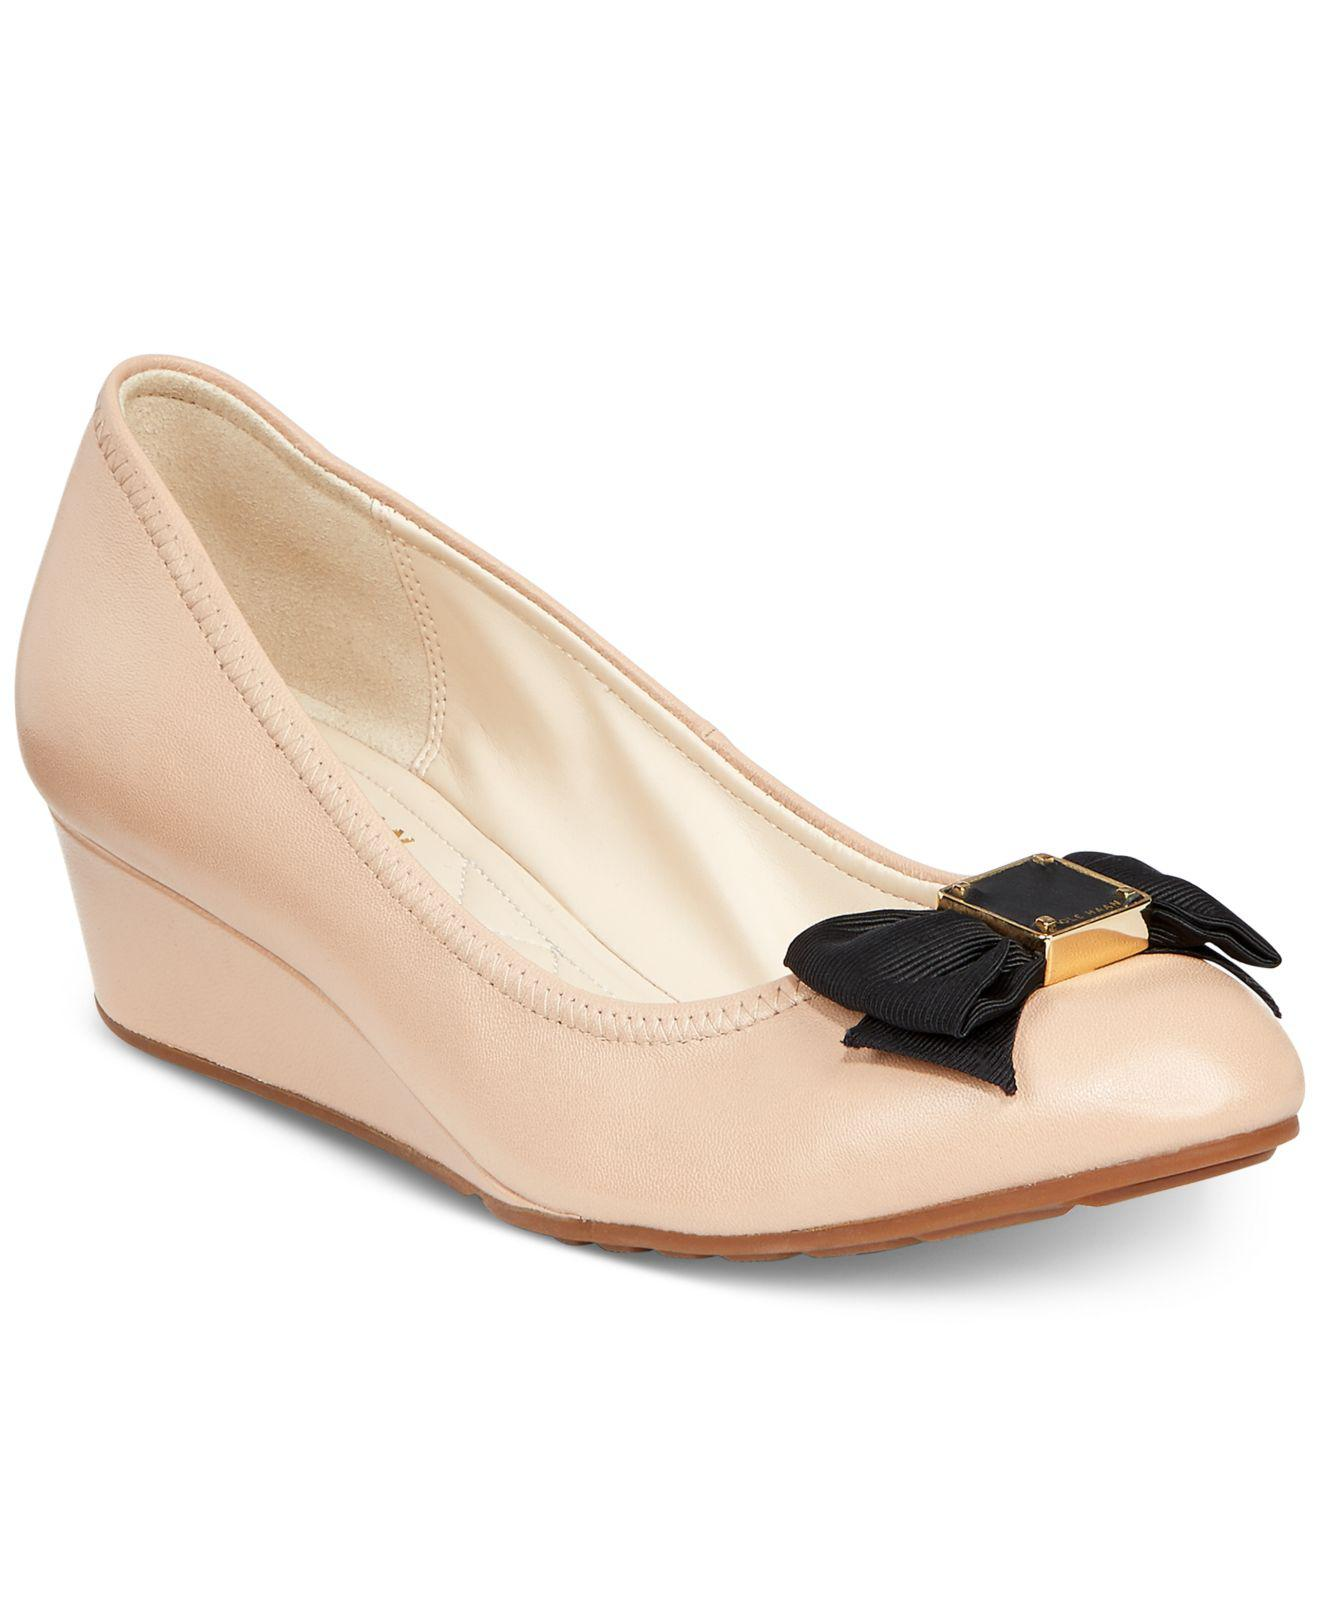 34d9677910ee Lyst - Cole Haan Tali Grand Bow Wedge Pumps in Natural